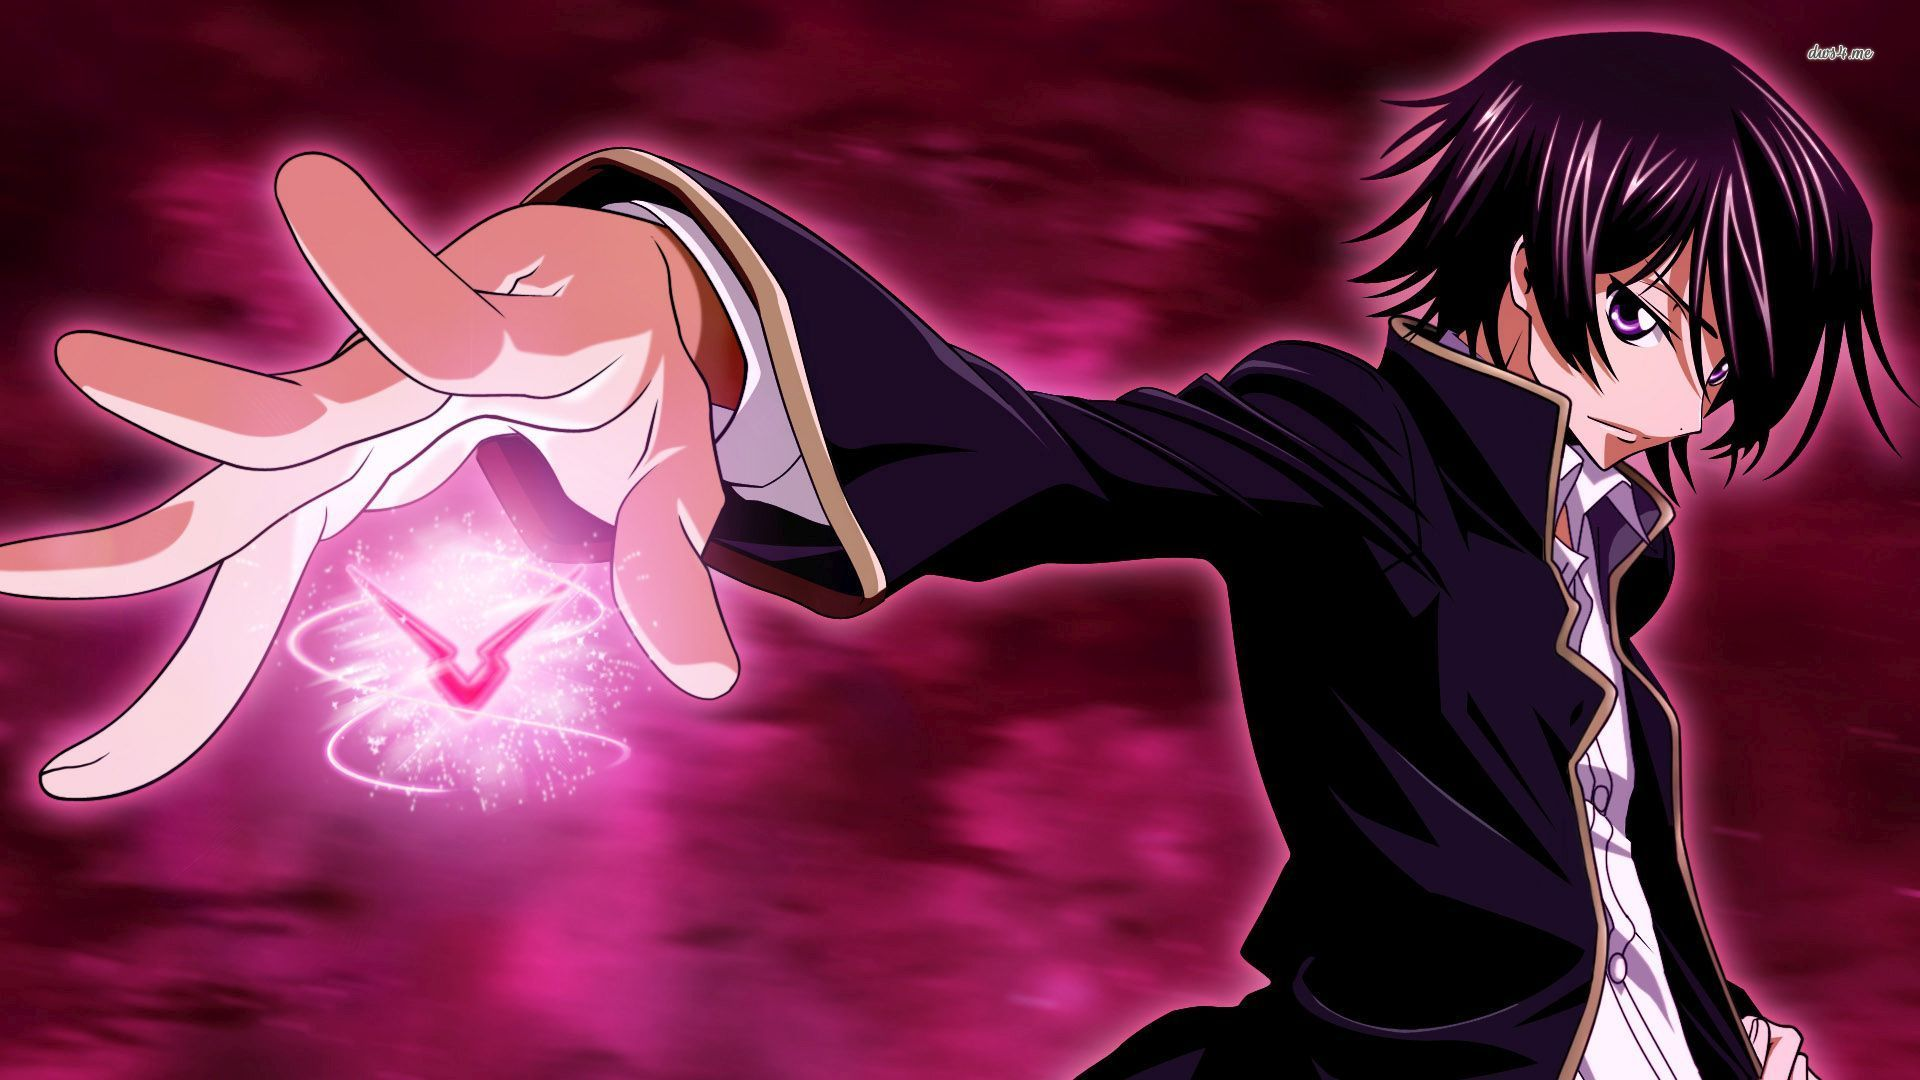 wallpaper lelouch - photo #11